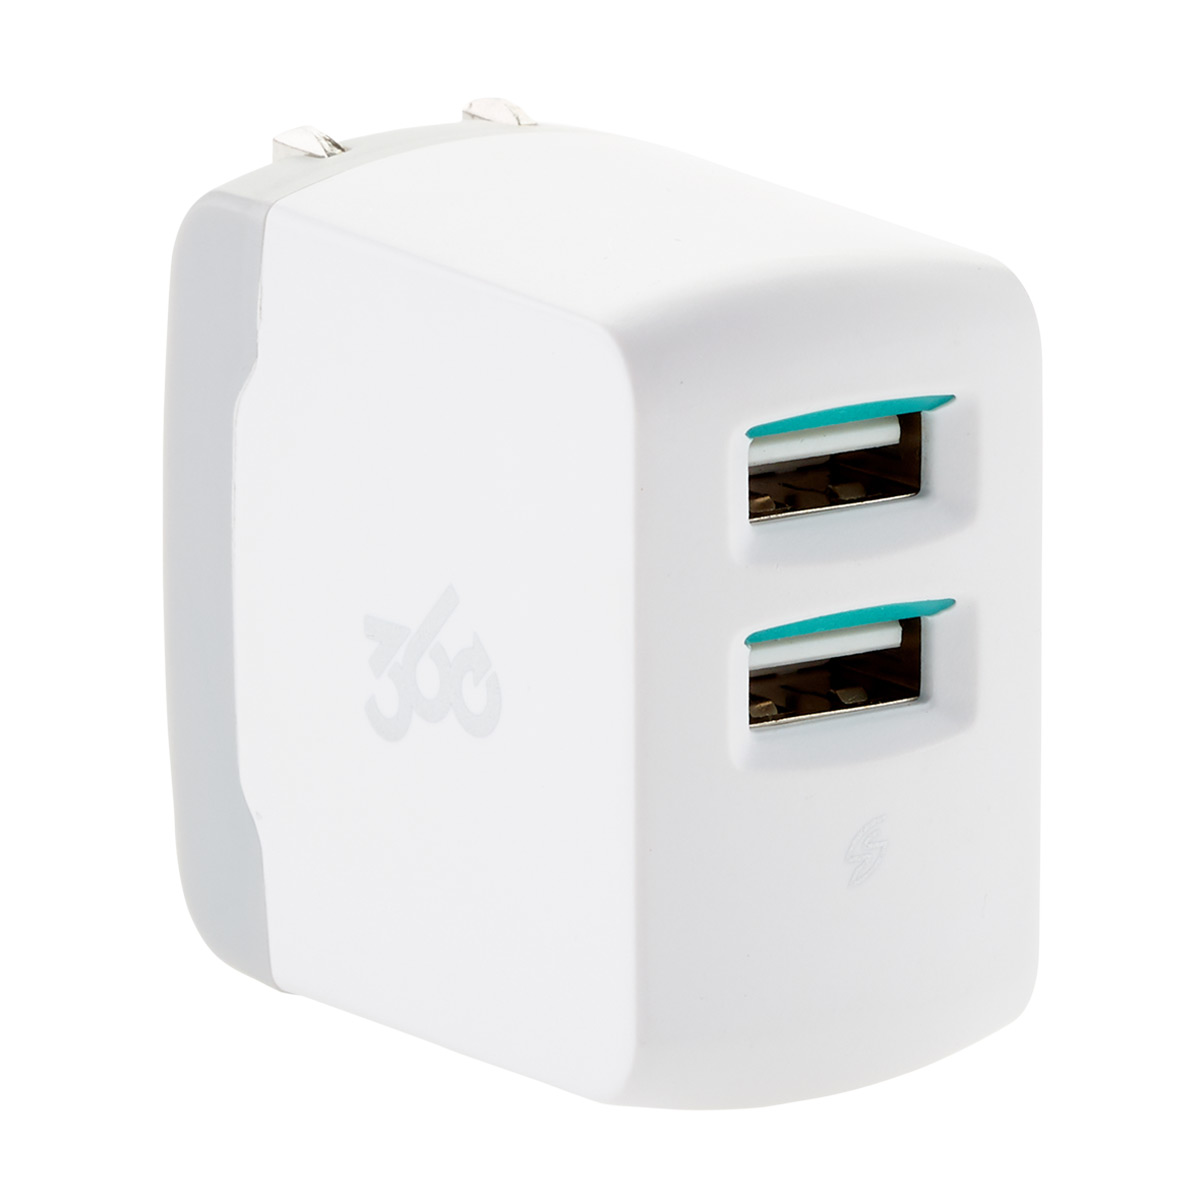 Vivid 2.4 Dual 2-Port USB Wall Charger